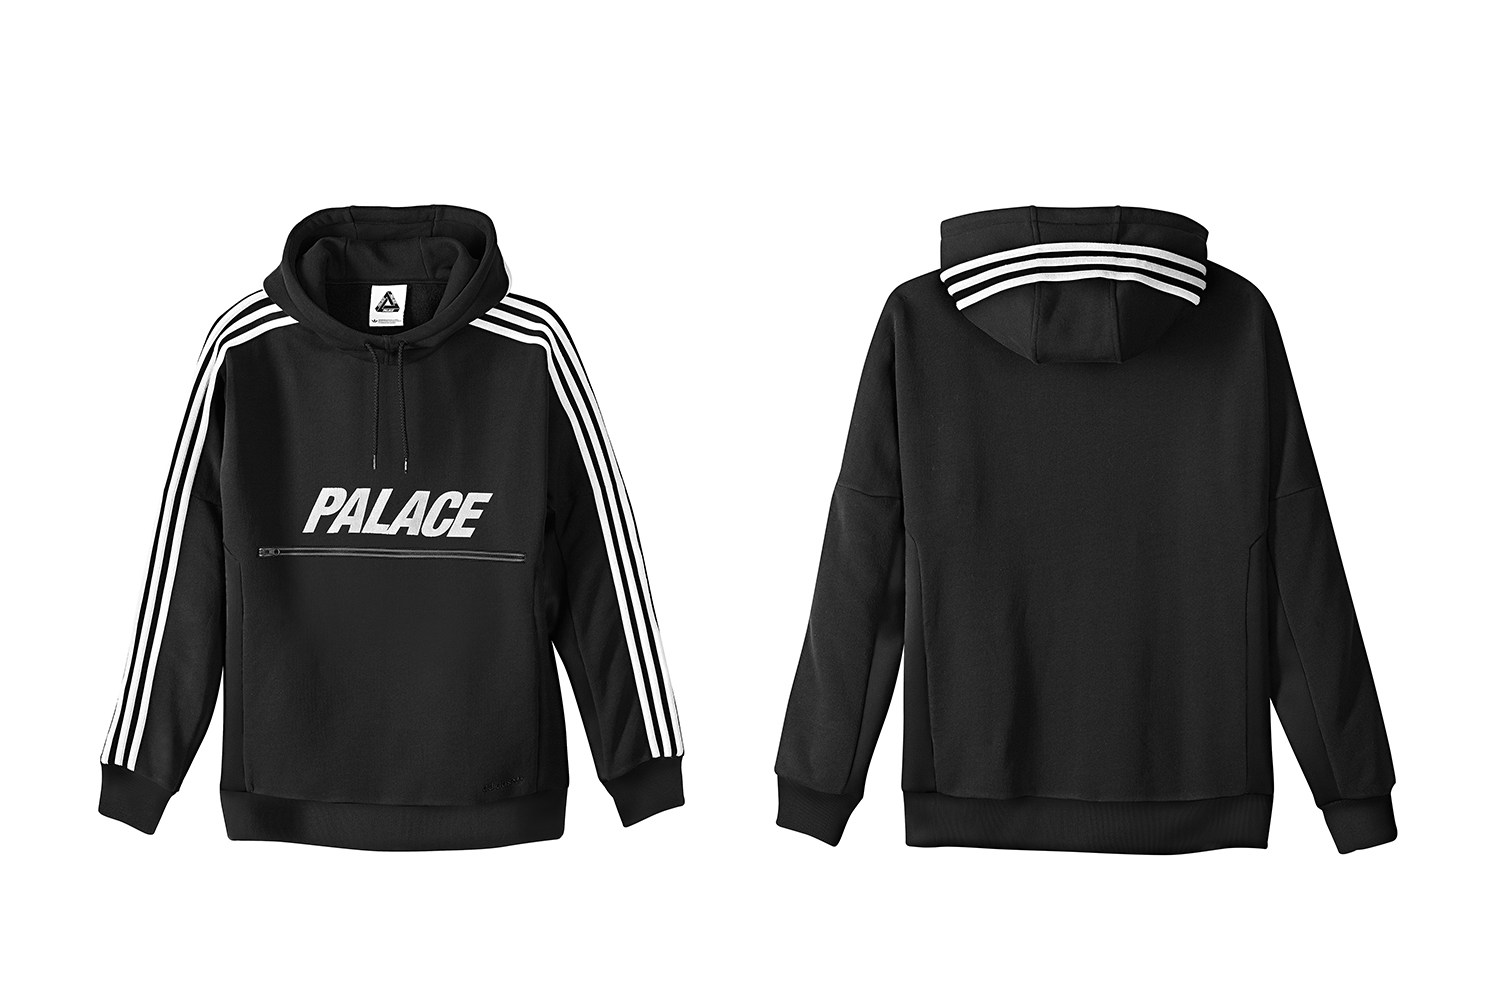 adidas-originals-palace-ss16-spring-summer-2016-collection-3